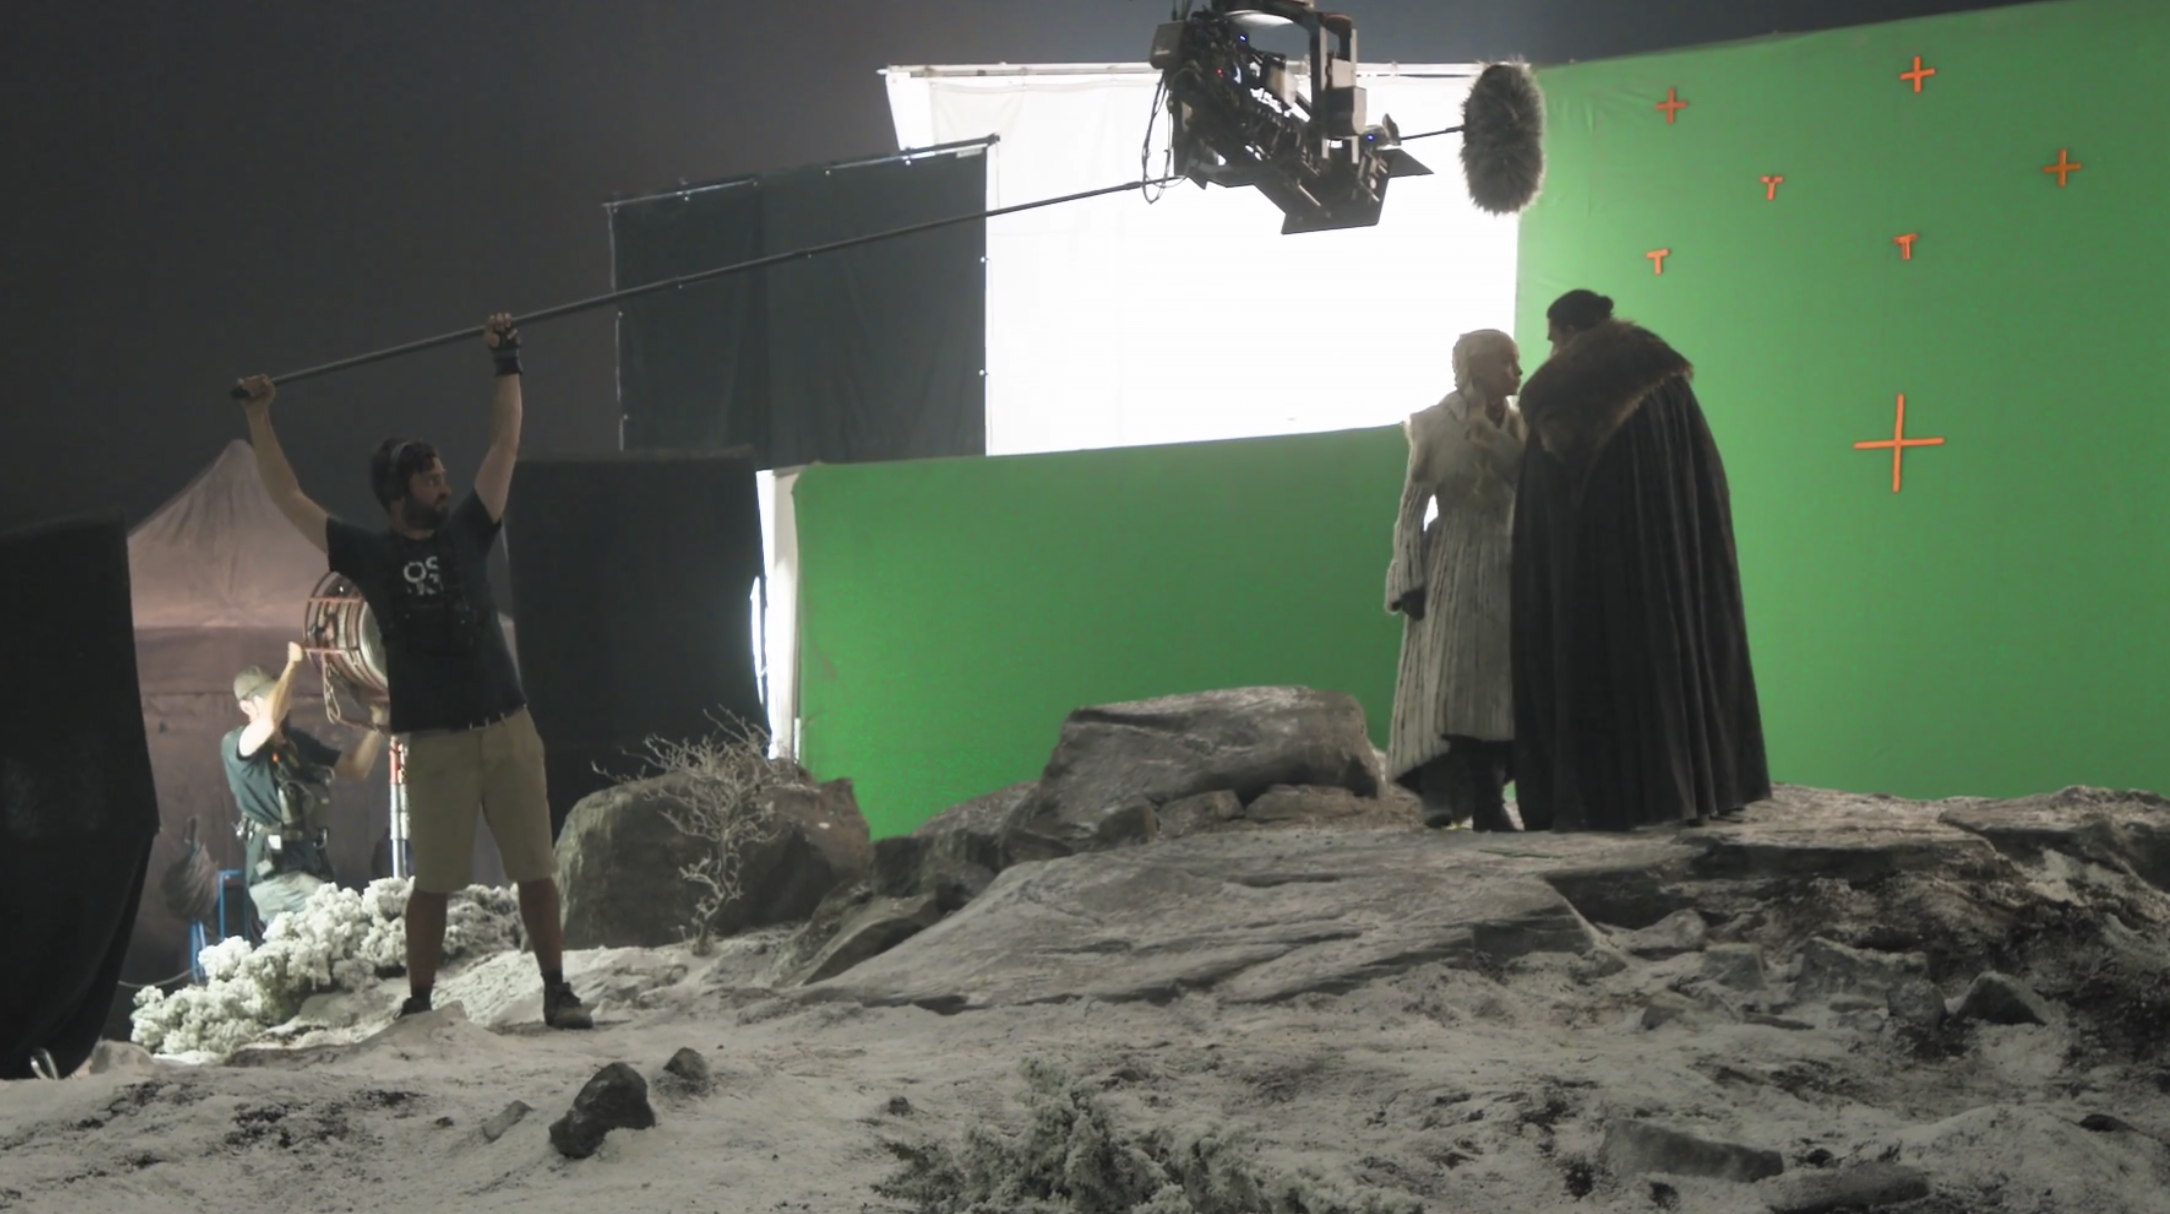 Emilia Clarke and Kit Harington filming a scene of Game of Thrones